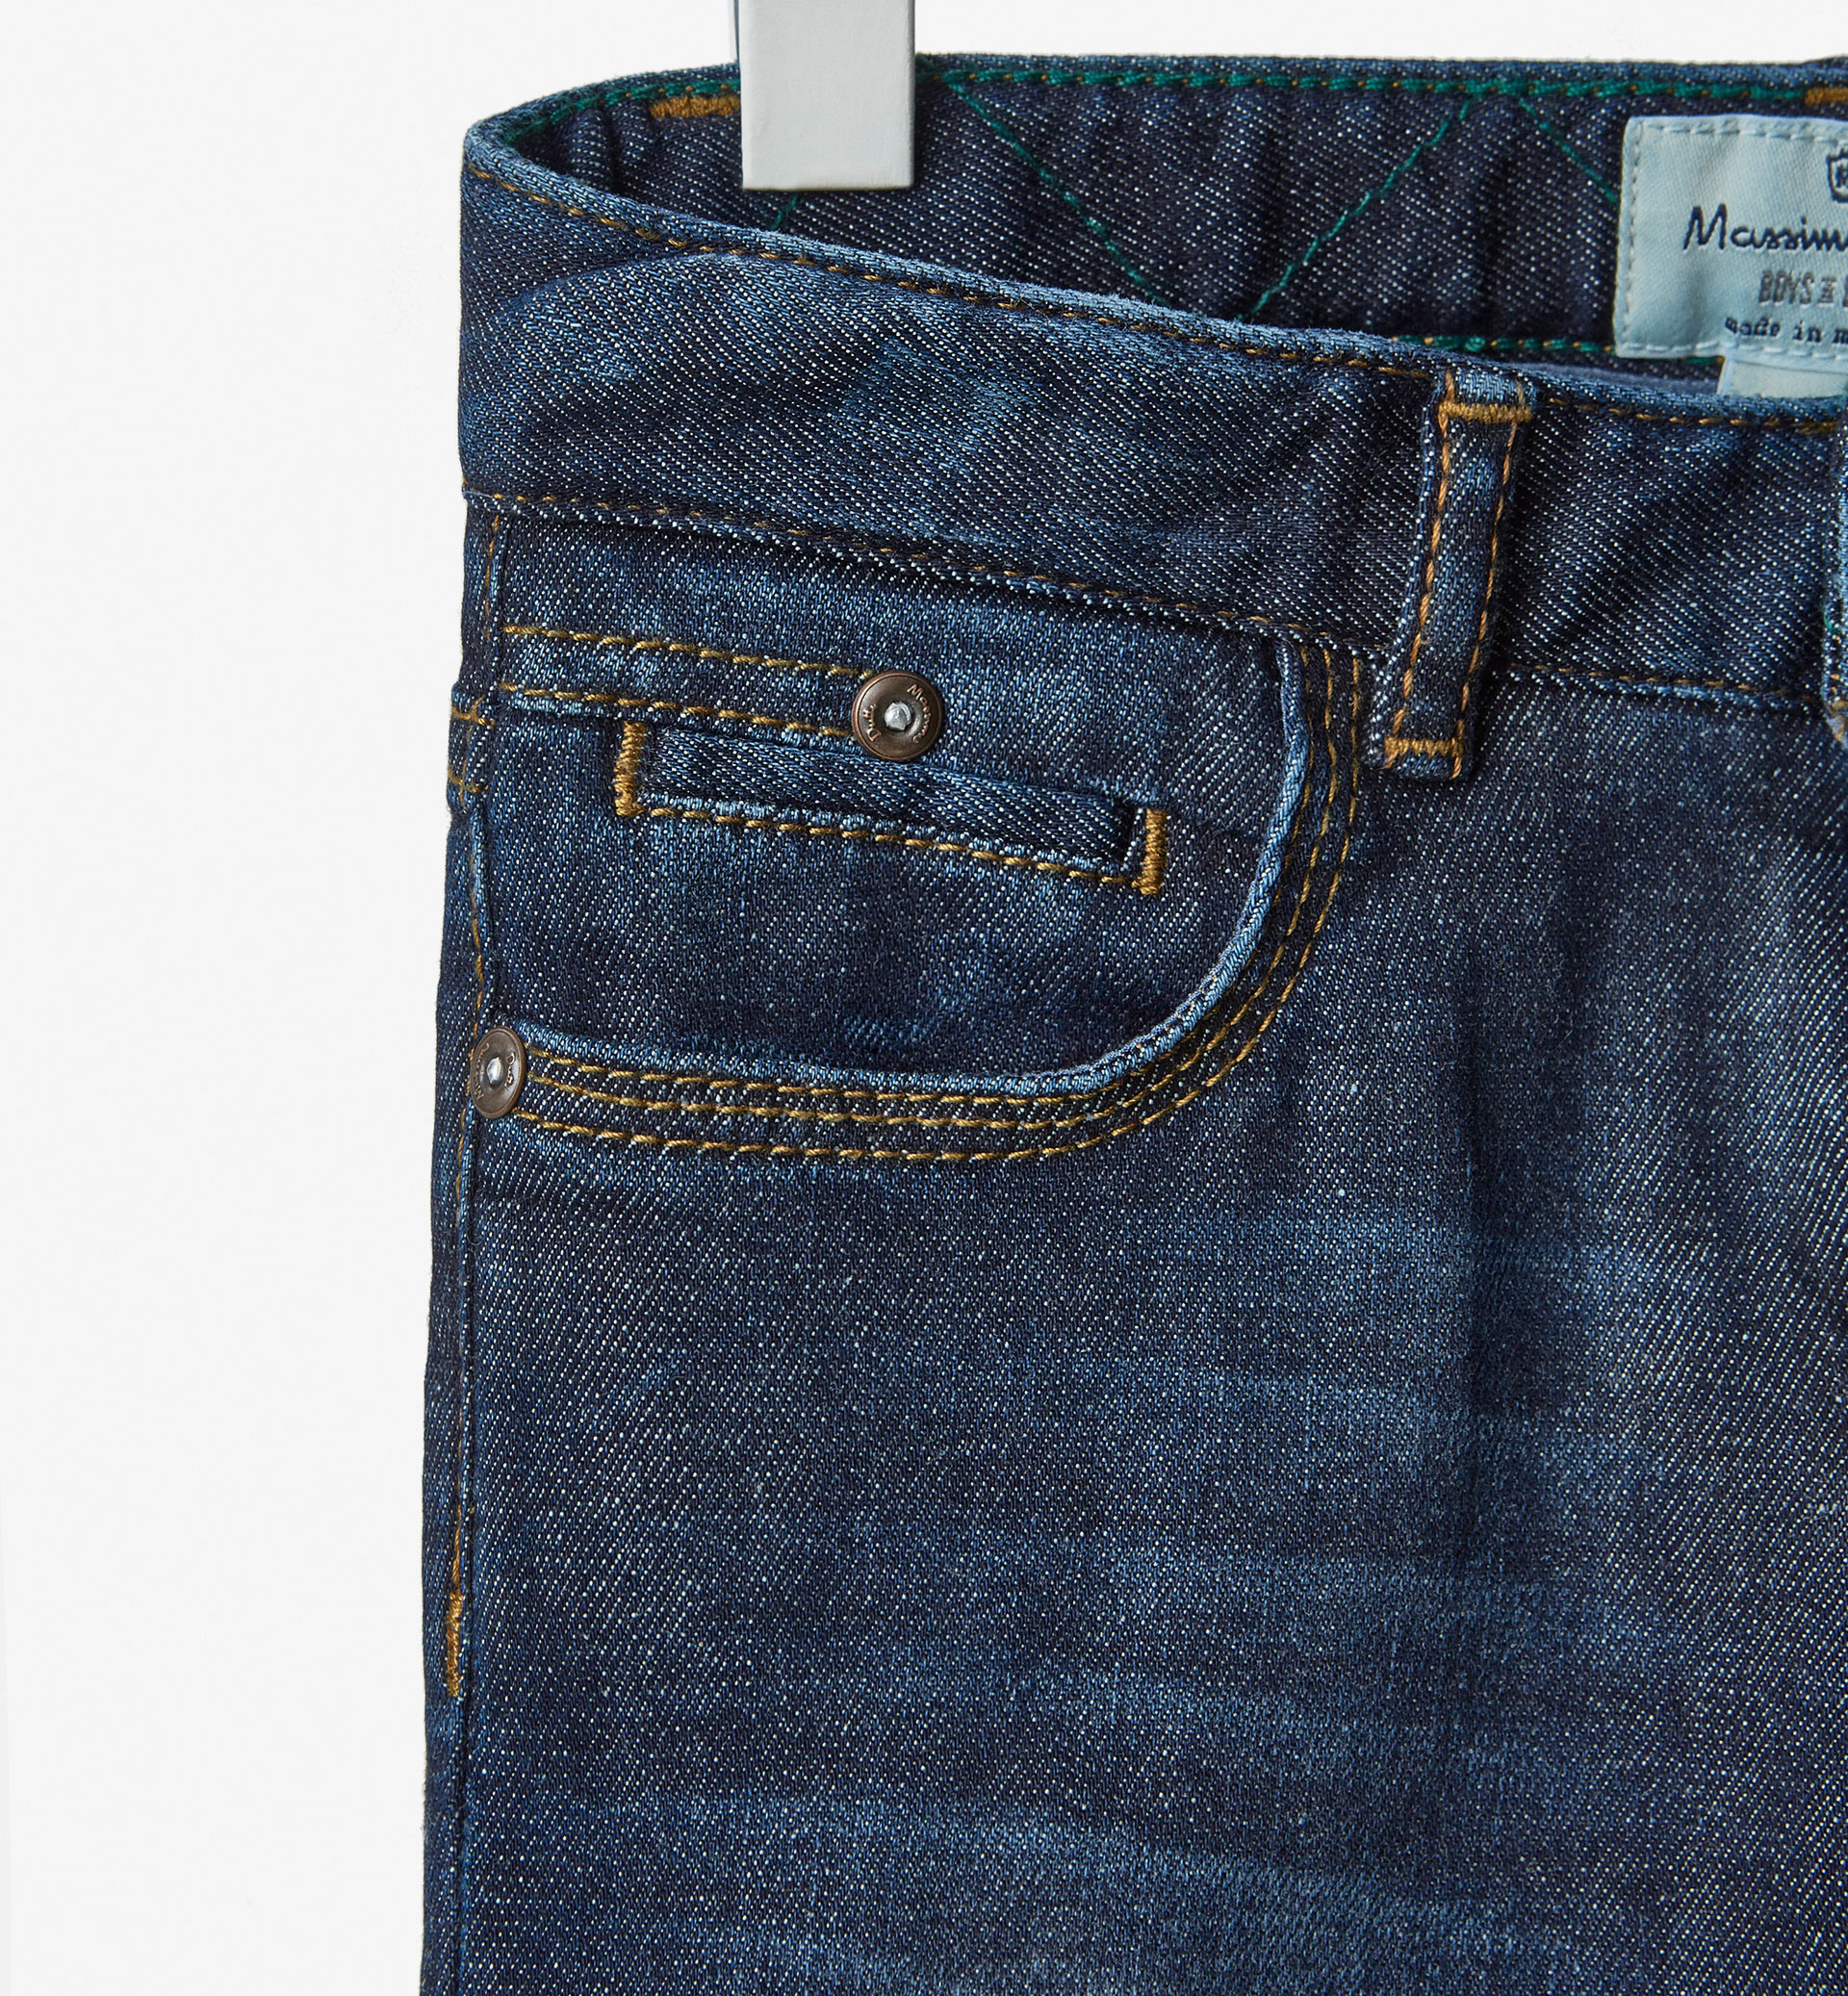 JEANS WITH CONTRASTING TOPSTITCHING